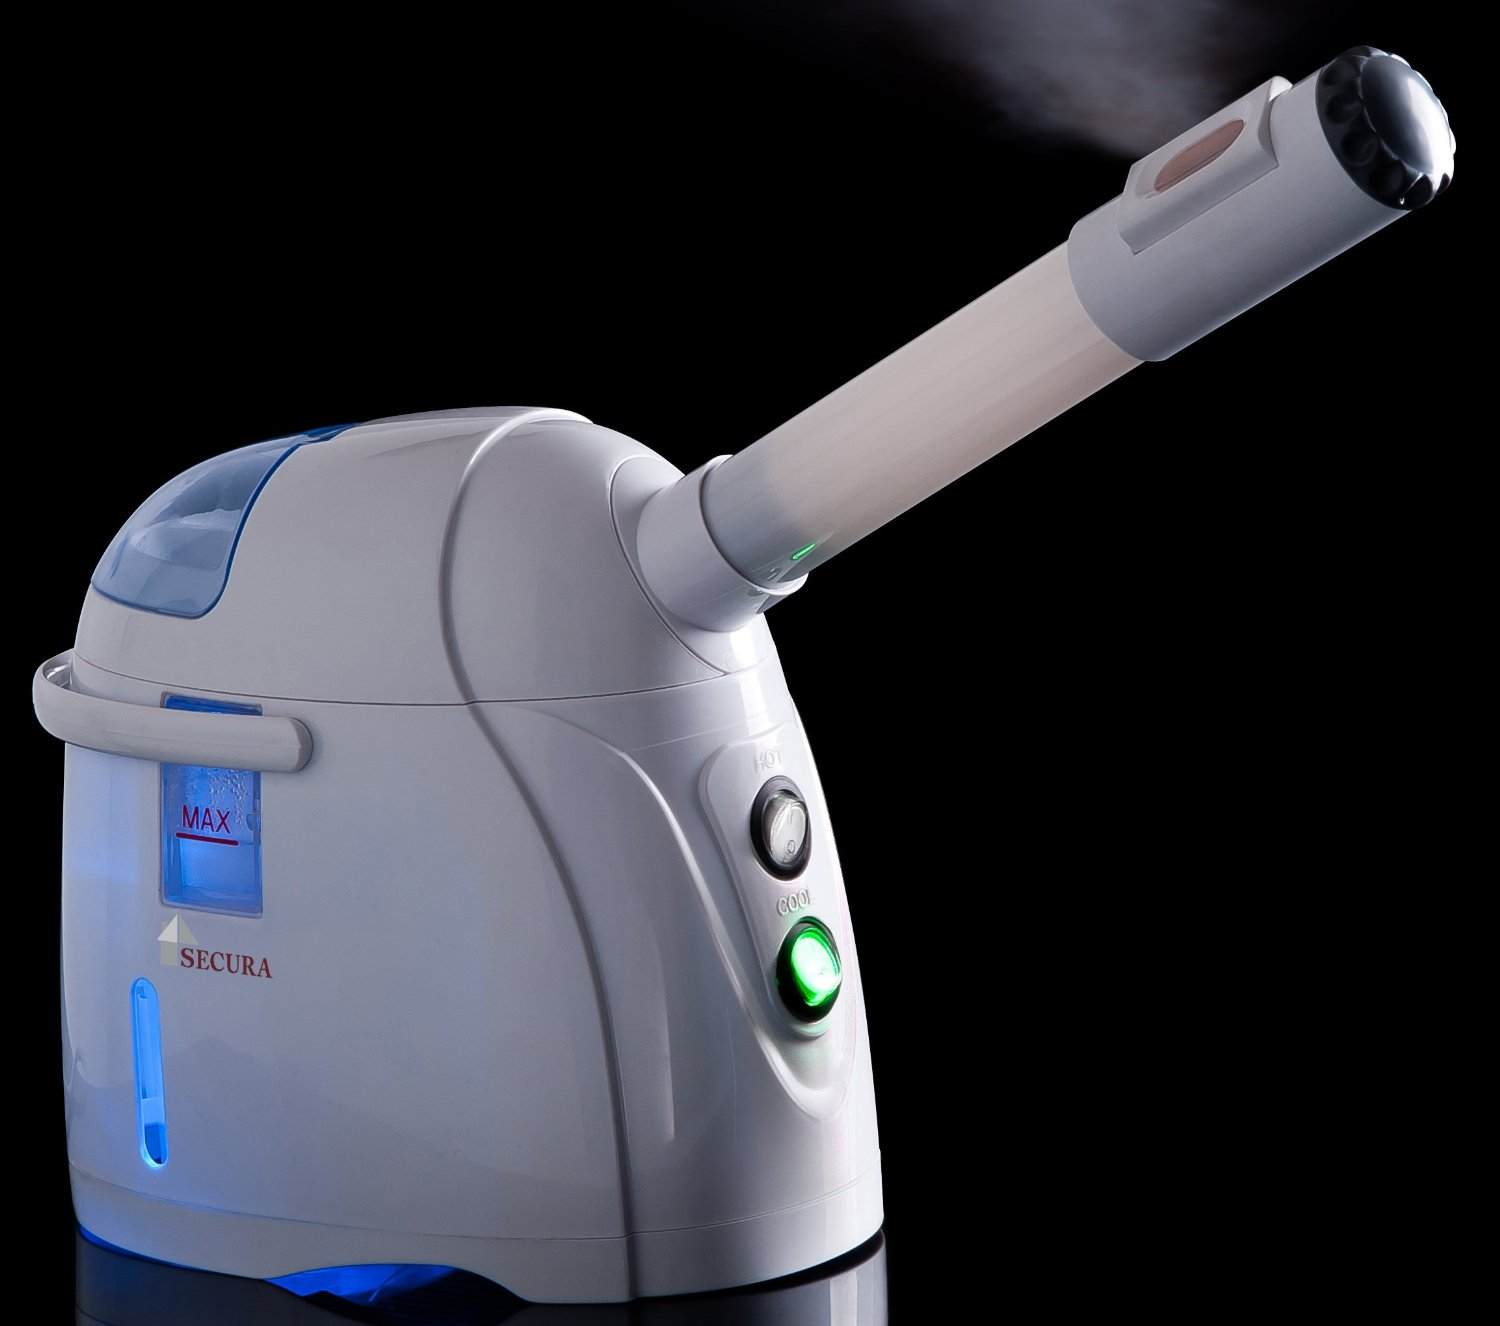 Micro-fine Hot And Cool Mist? My Secura Steamer Review